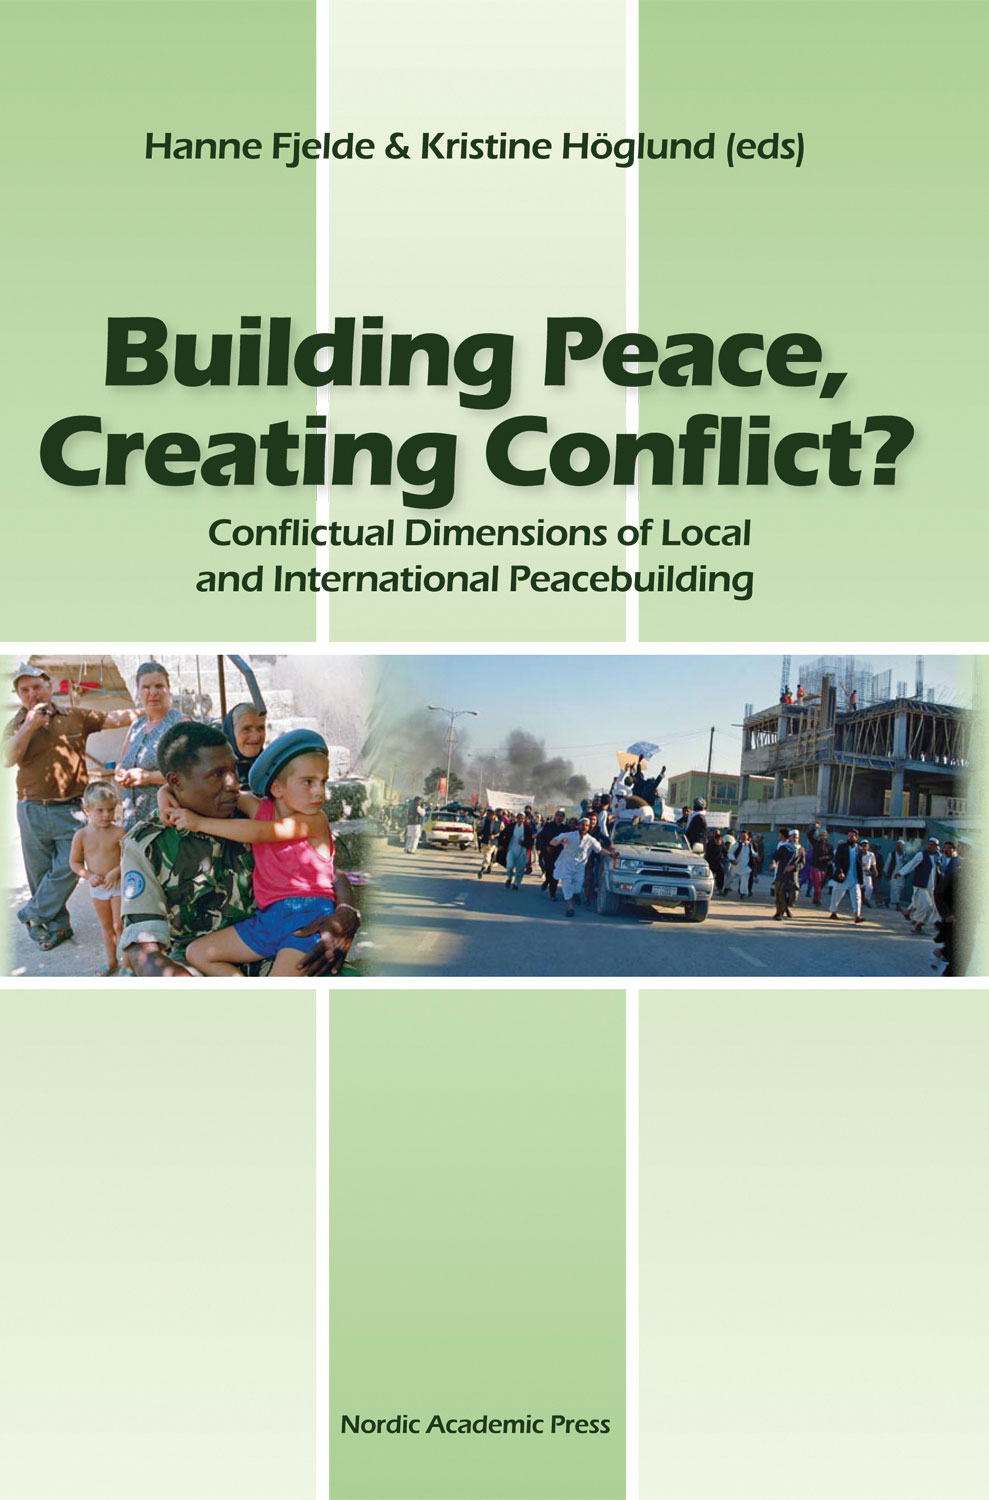 Building Peace, Creating Conflict?: Conflictual Dimensions of Local and International Peacebuilding